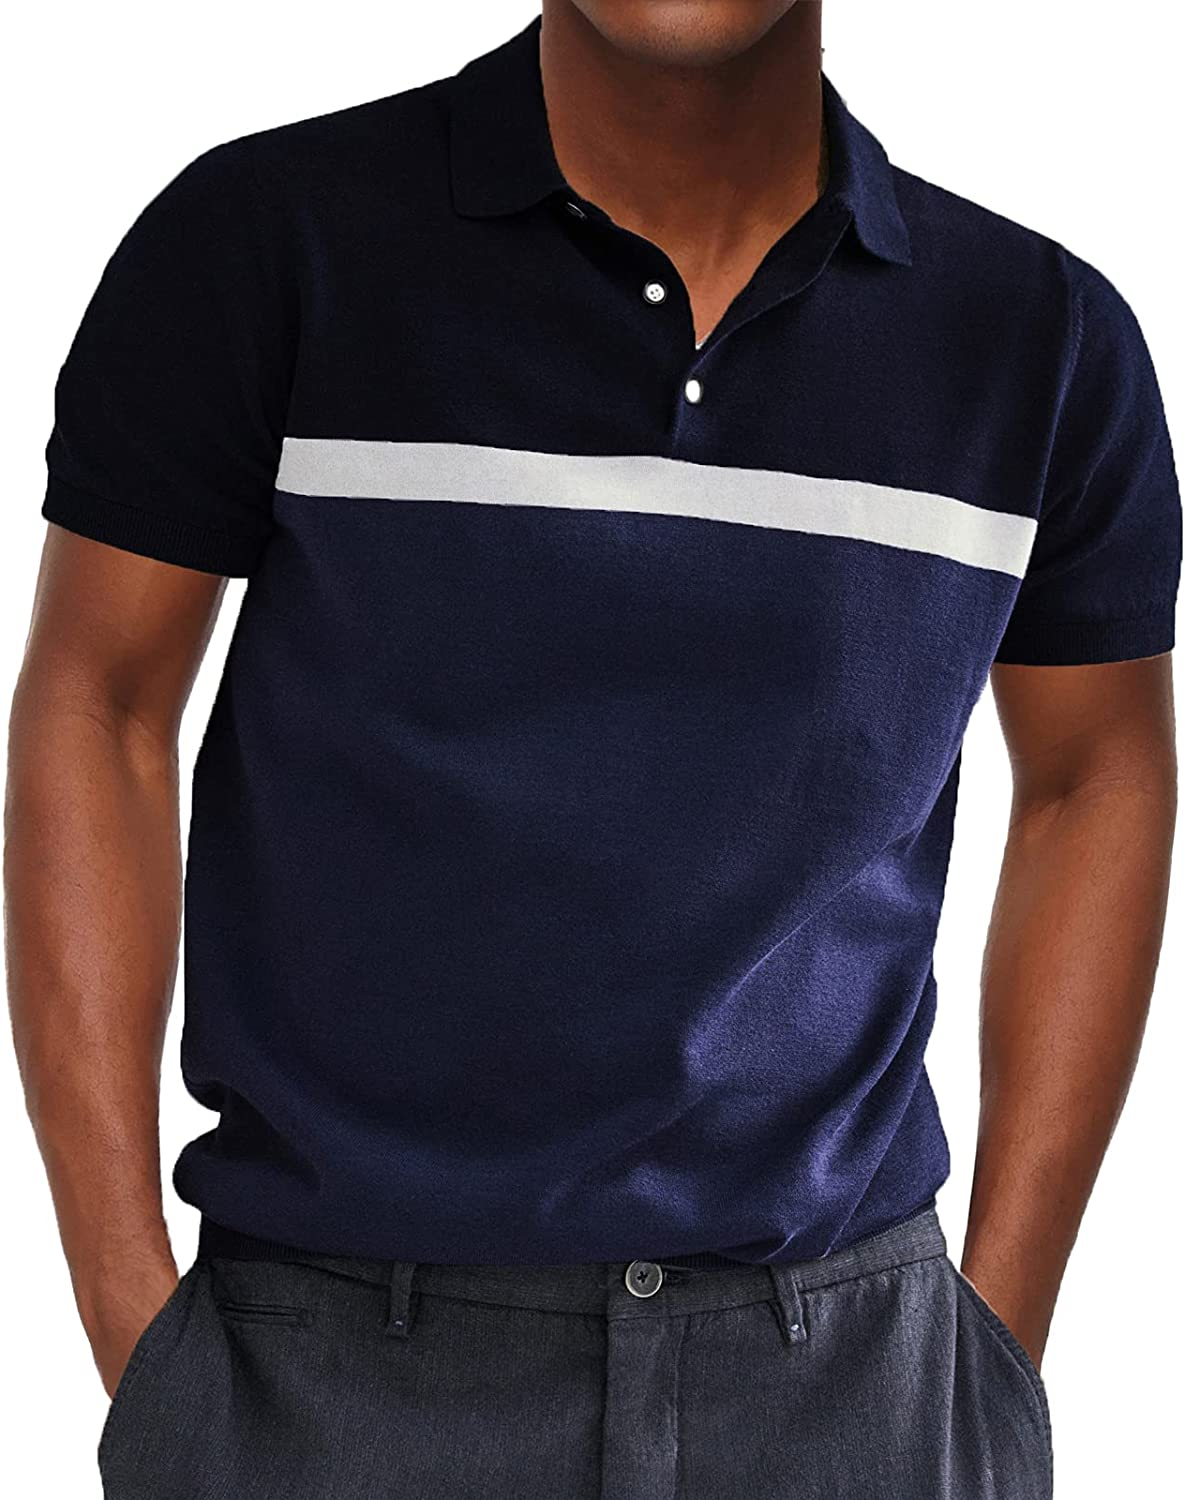 Men's Contrast Knit Polo Shirts T Sleeve free shipping Attention brand Lightweight Short